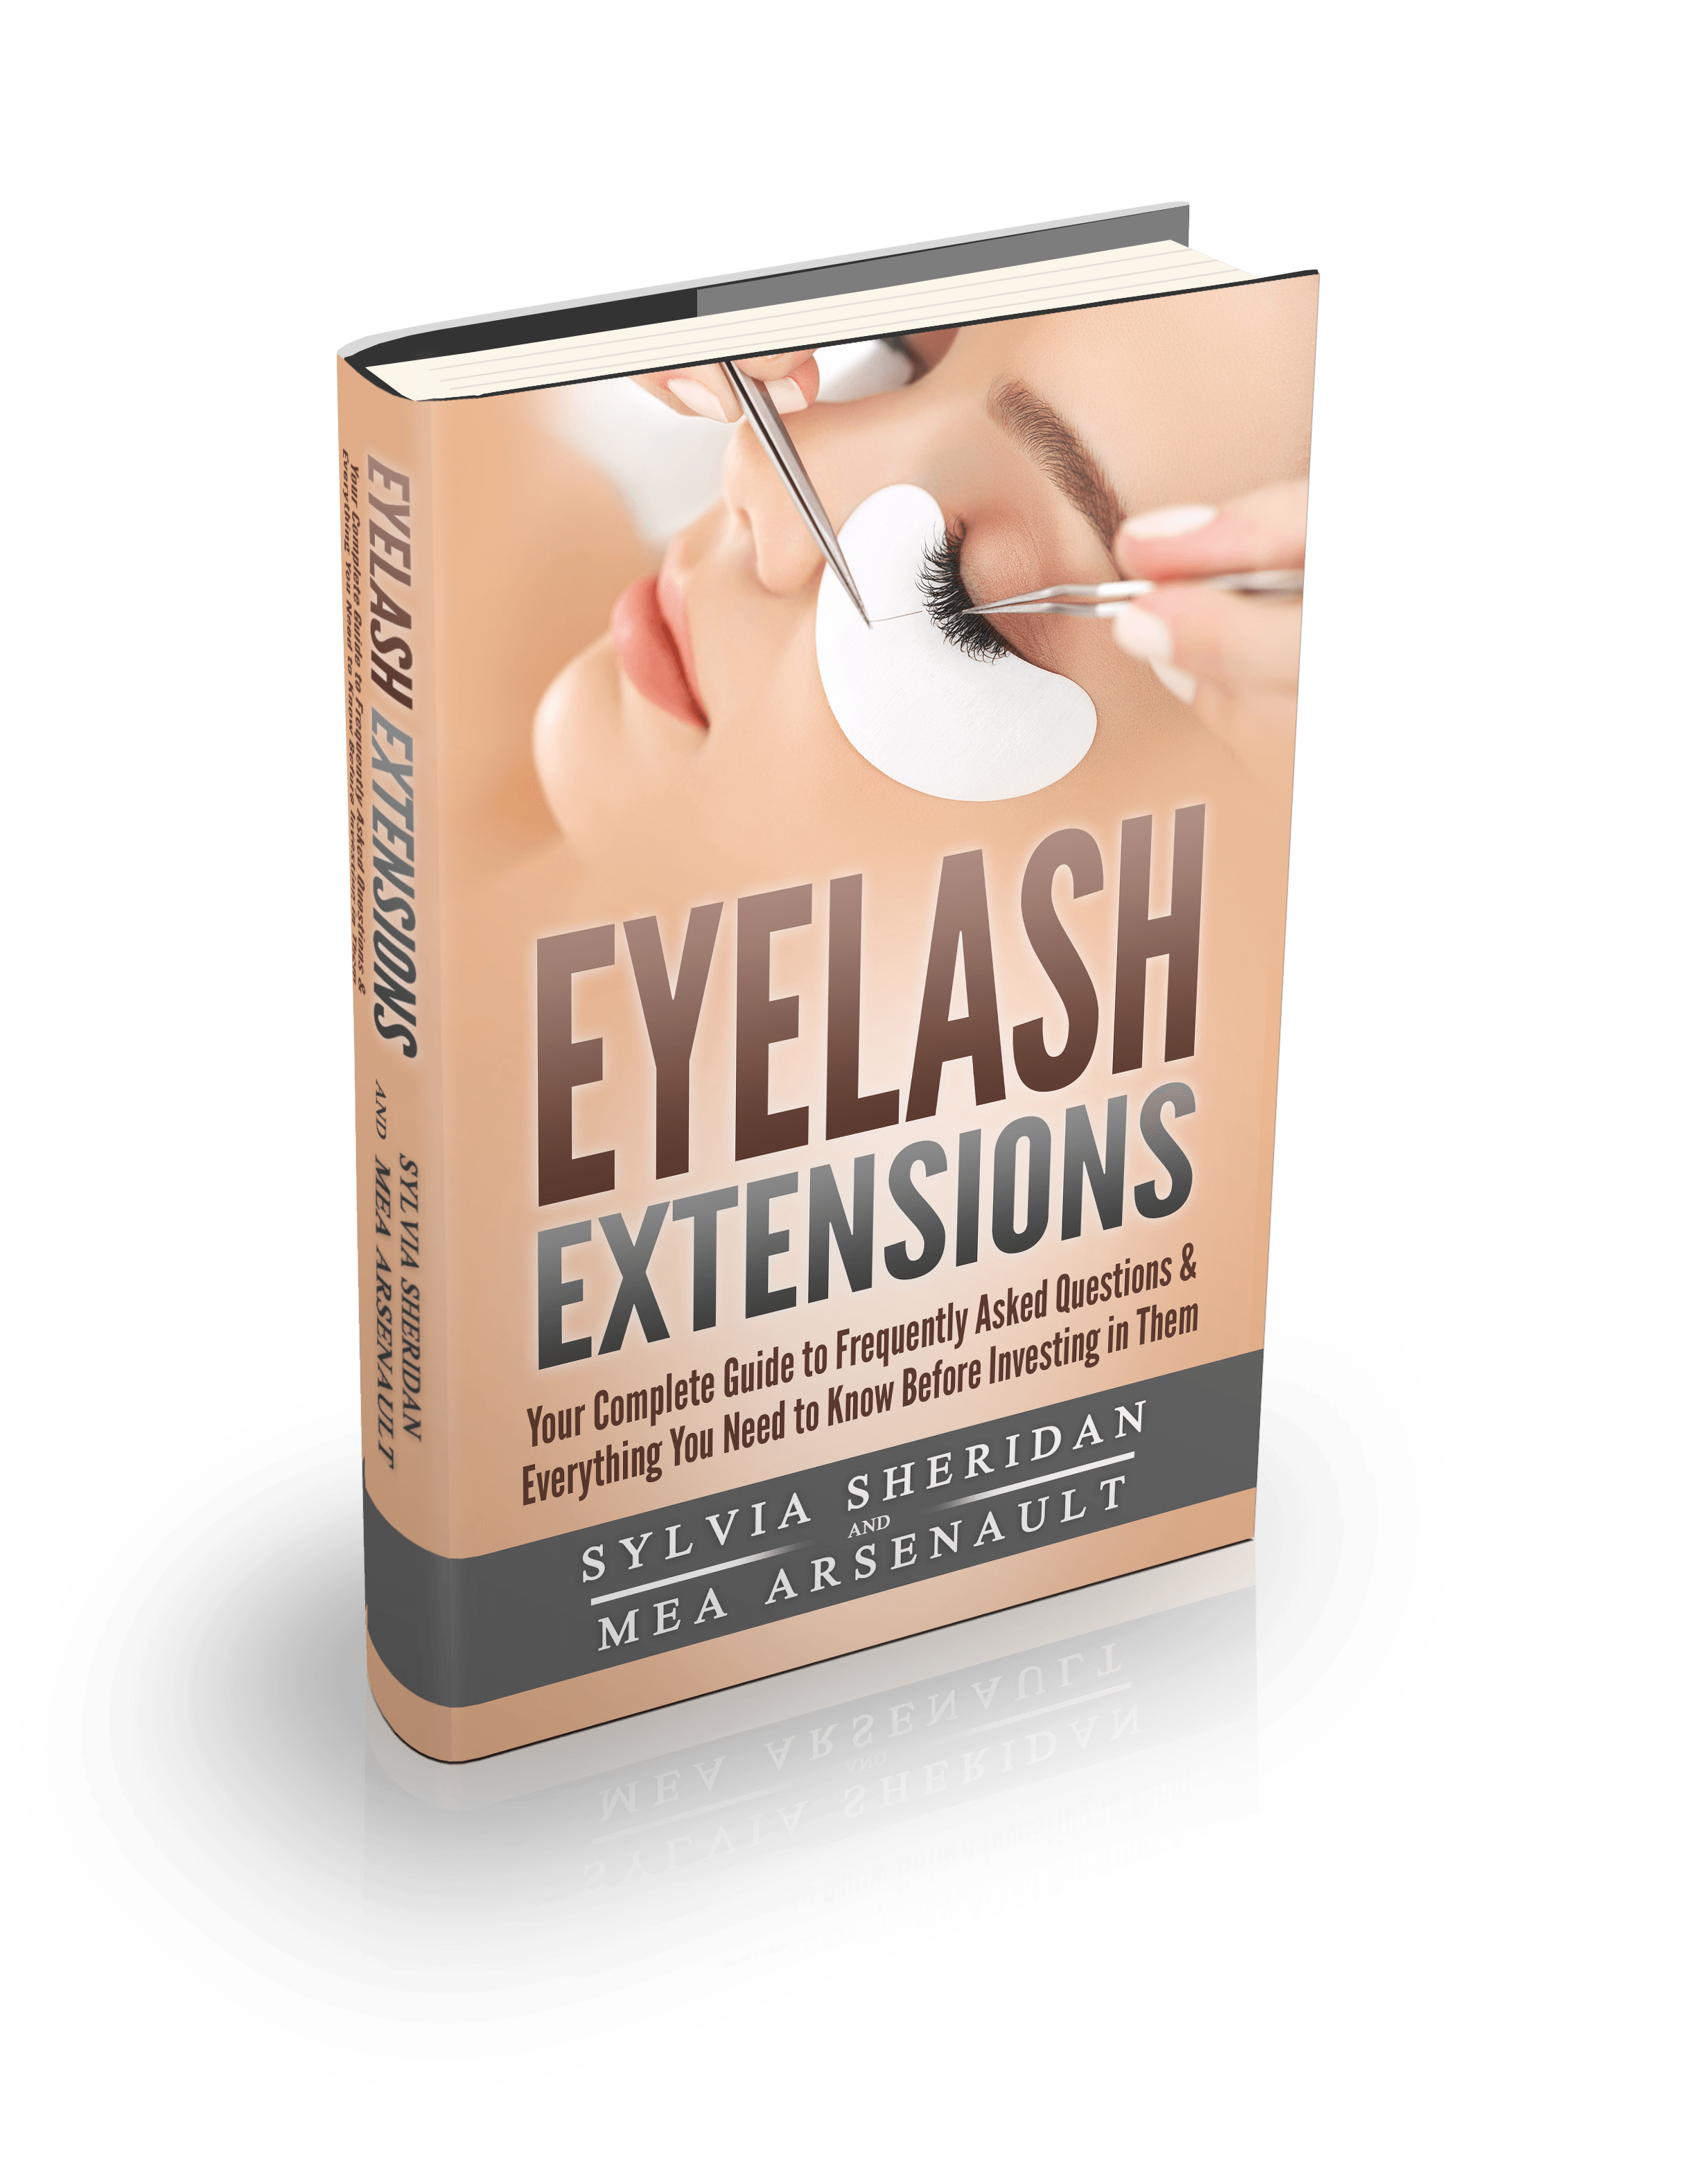 Eyelash Extension eBook